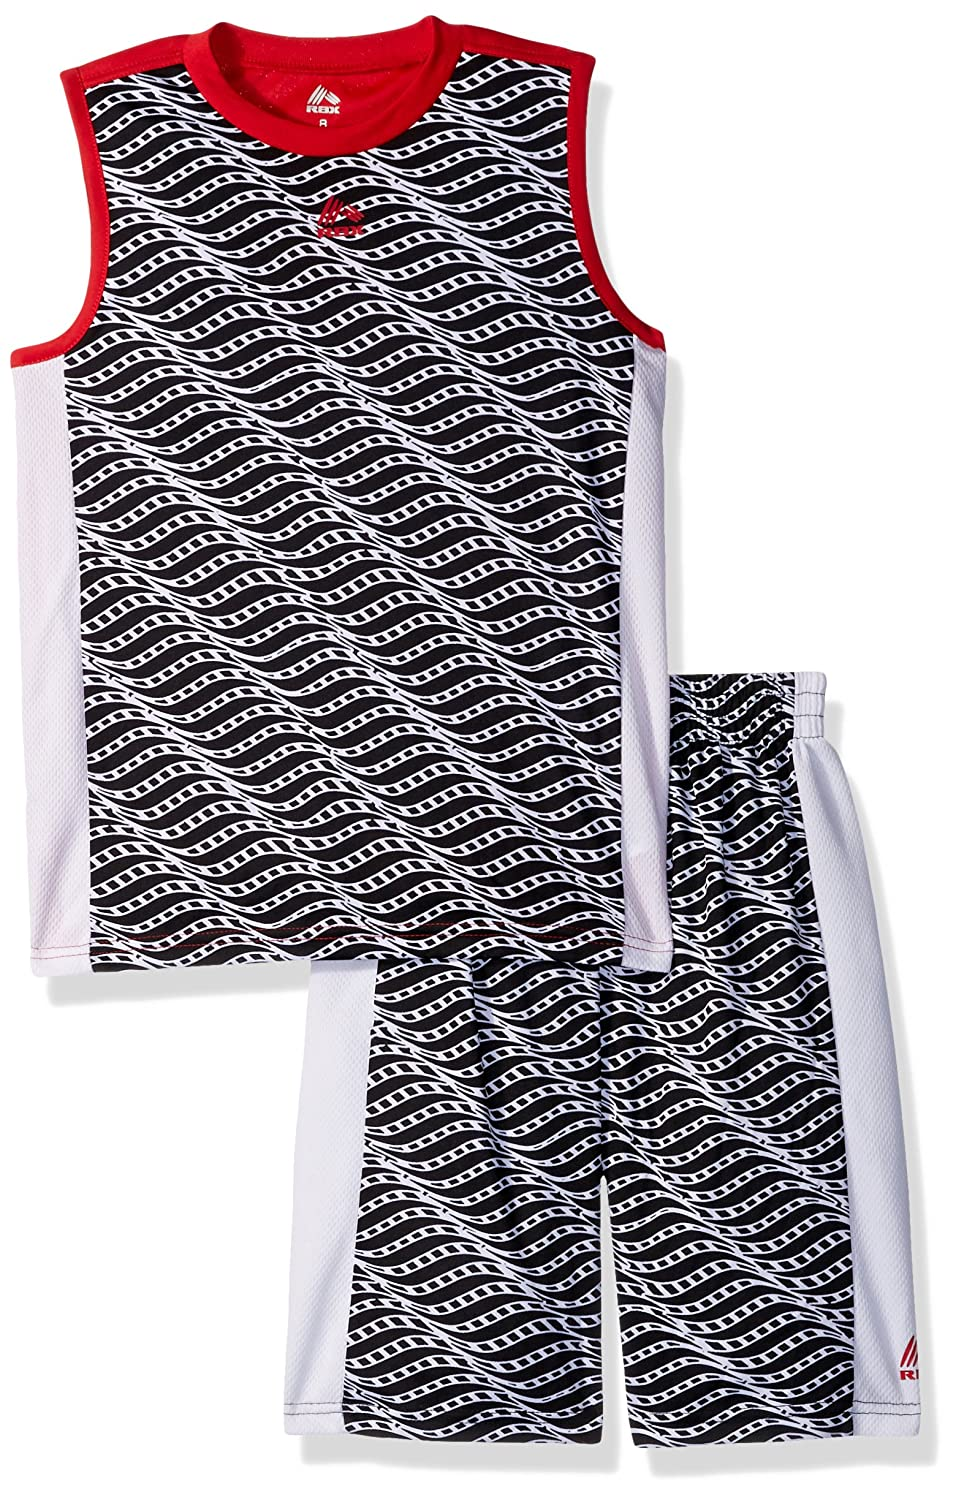 RBX Boys Tank Top and Short Set